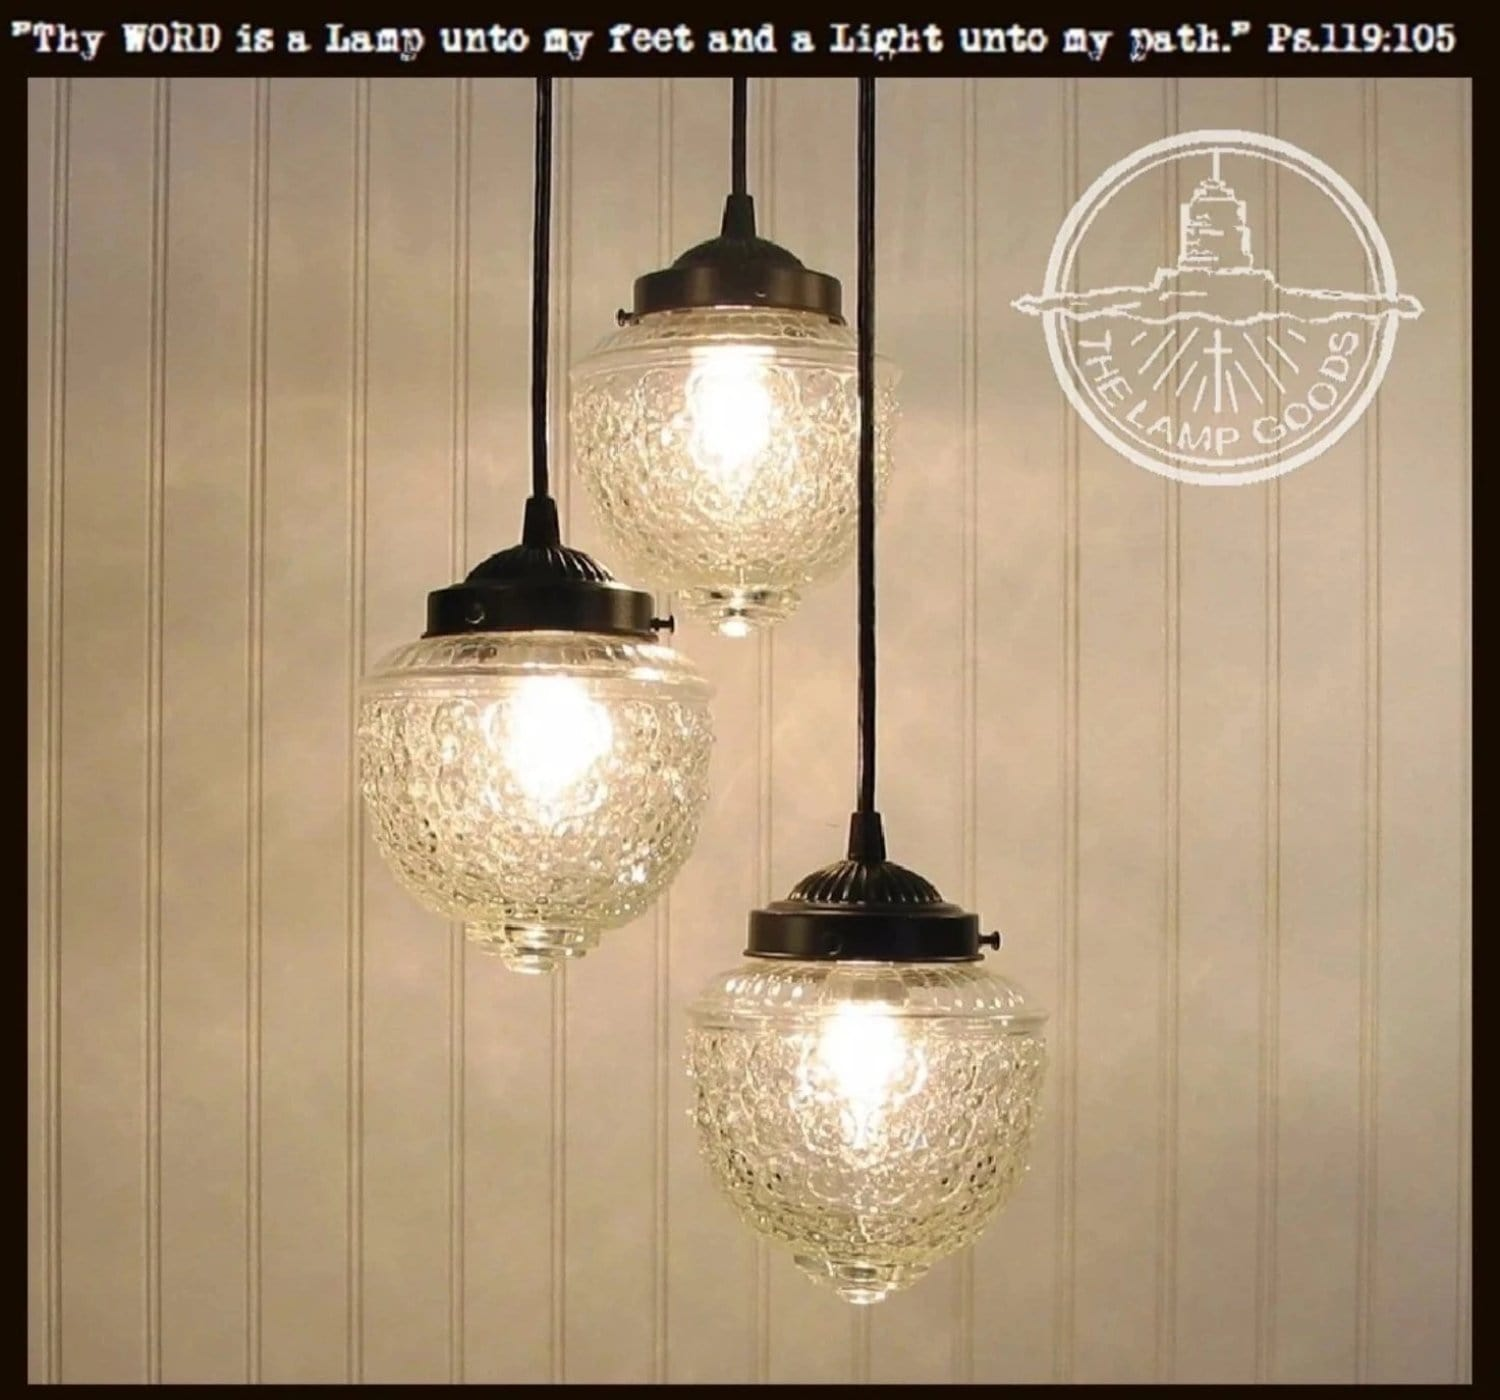 Island falls ii pendant chandelier light trio the lamp goods pendant chandelier light trio the lamp goods aloadofball